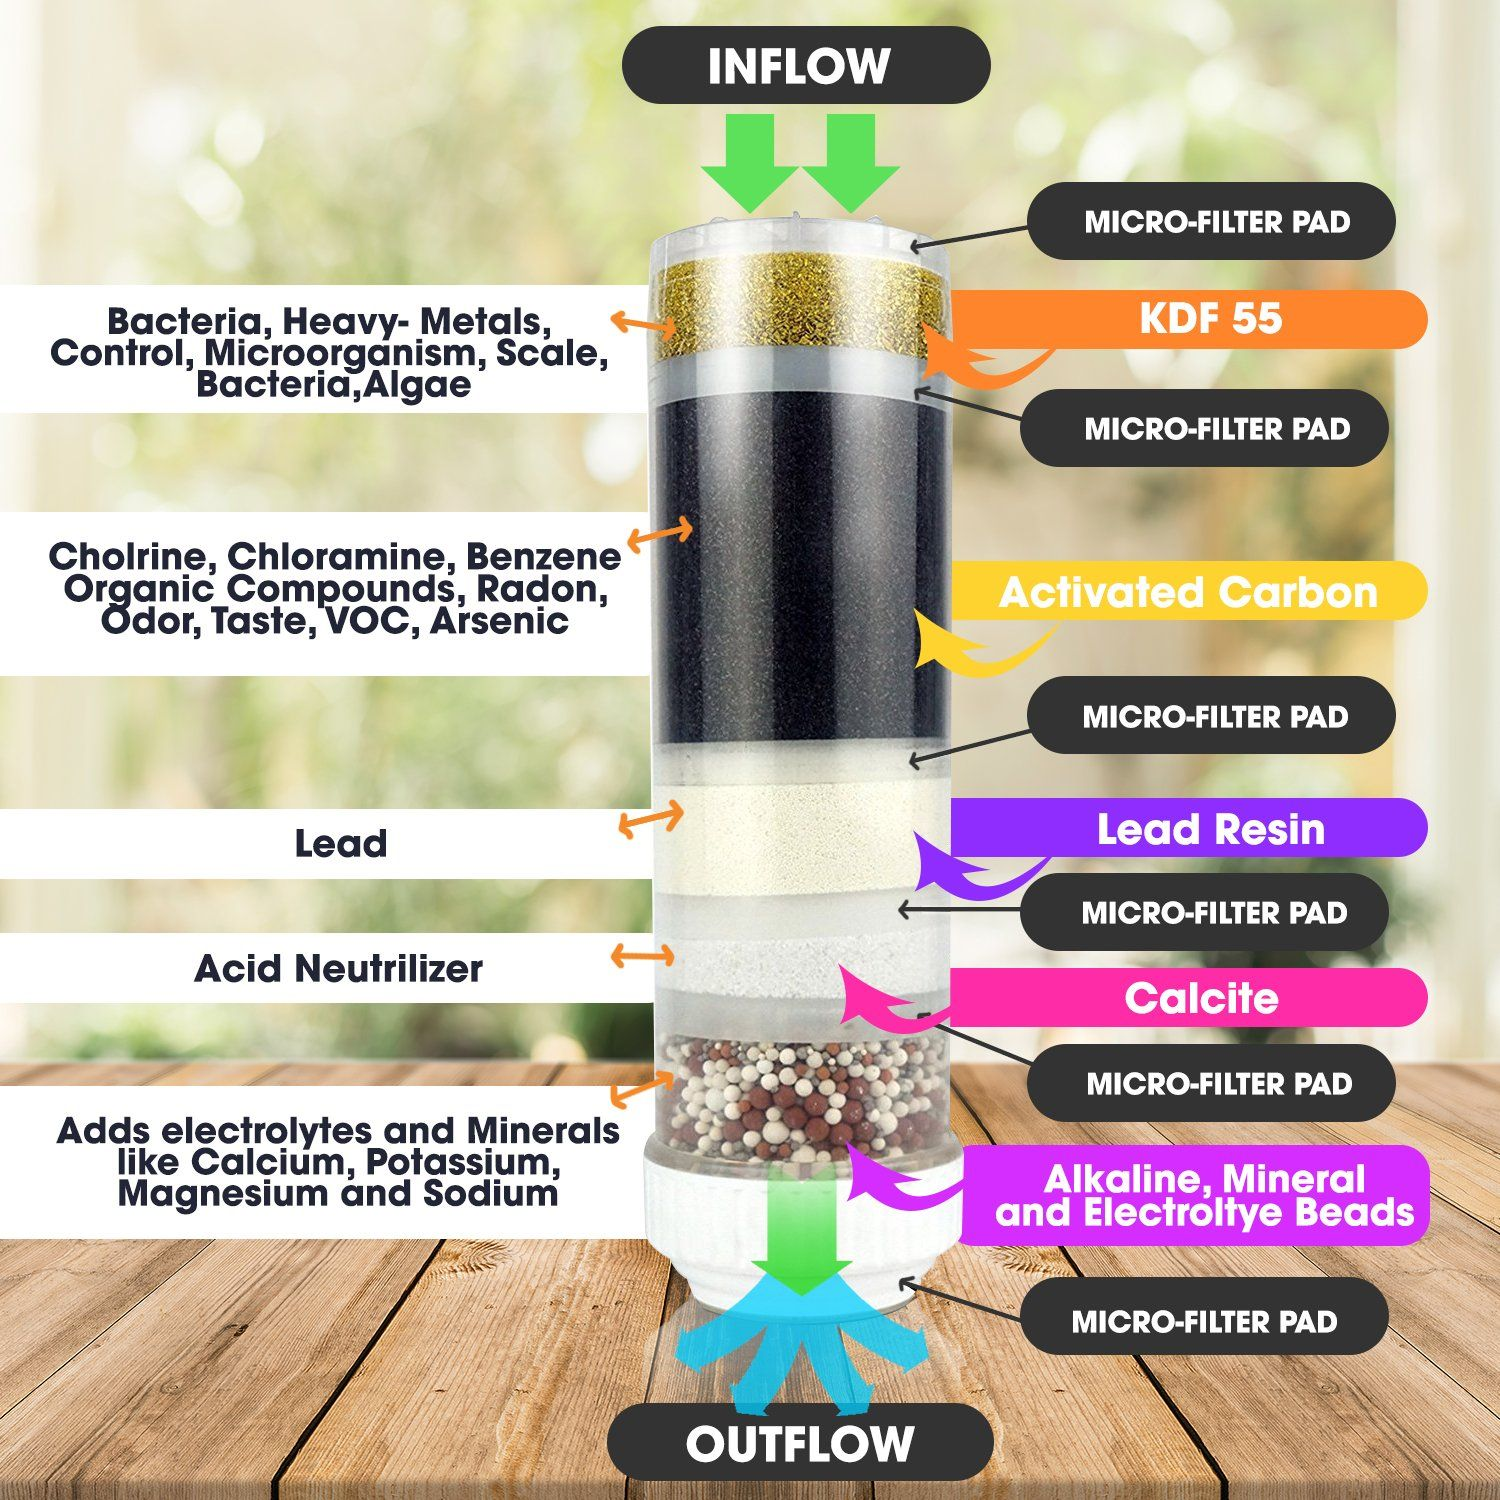 Mineralized Alkaline Water Filter By Blupure Countertop Water